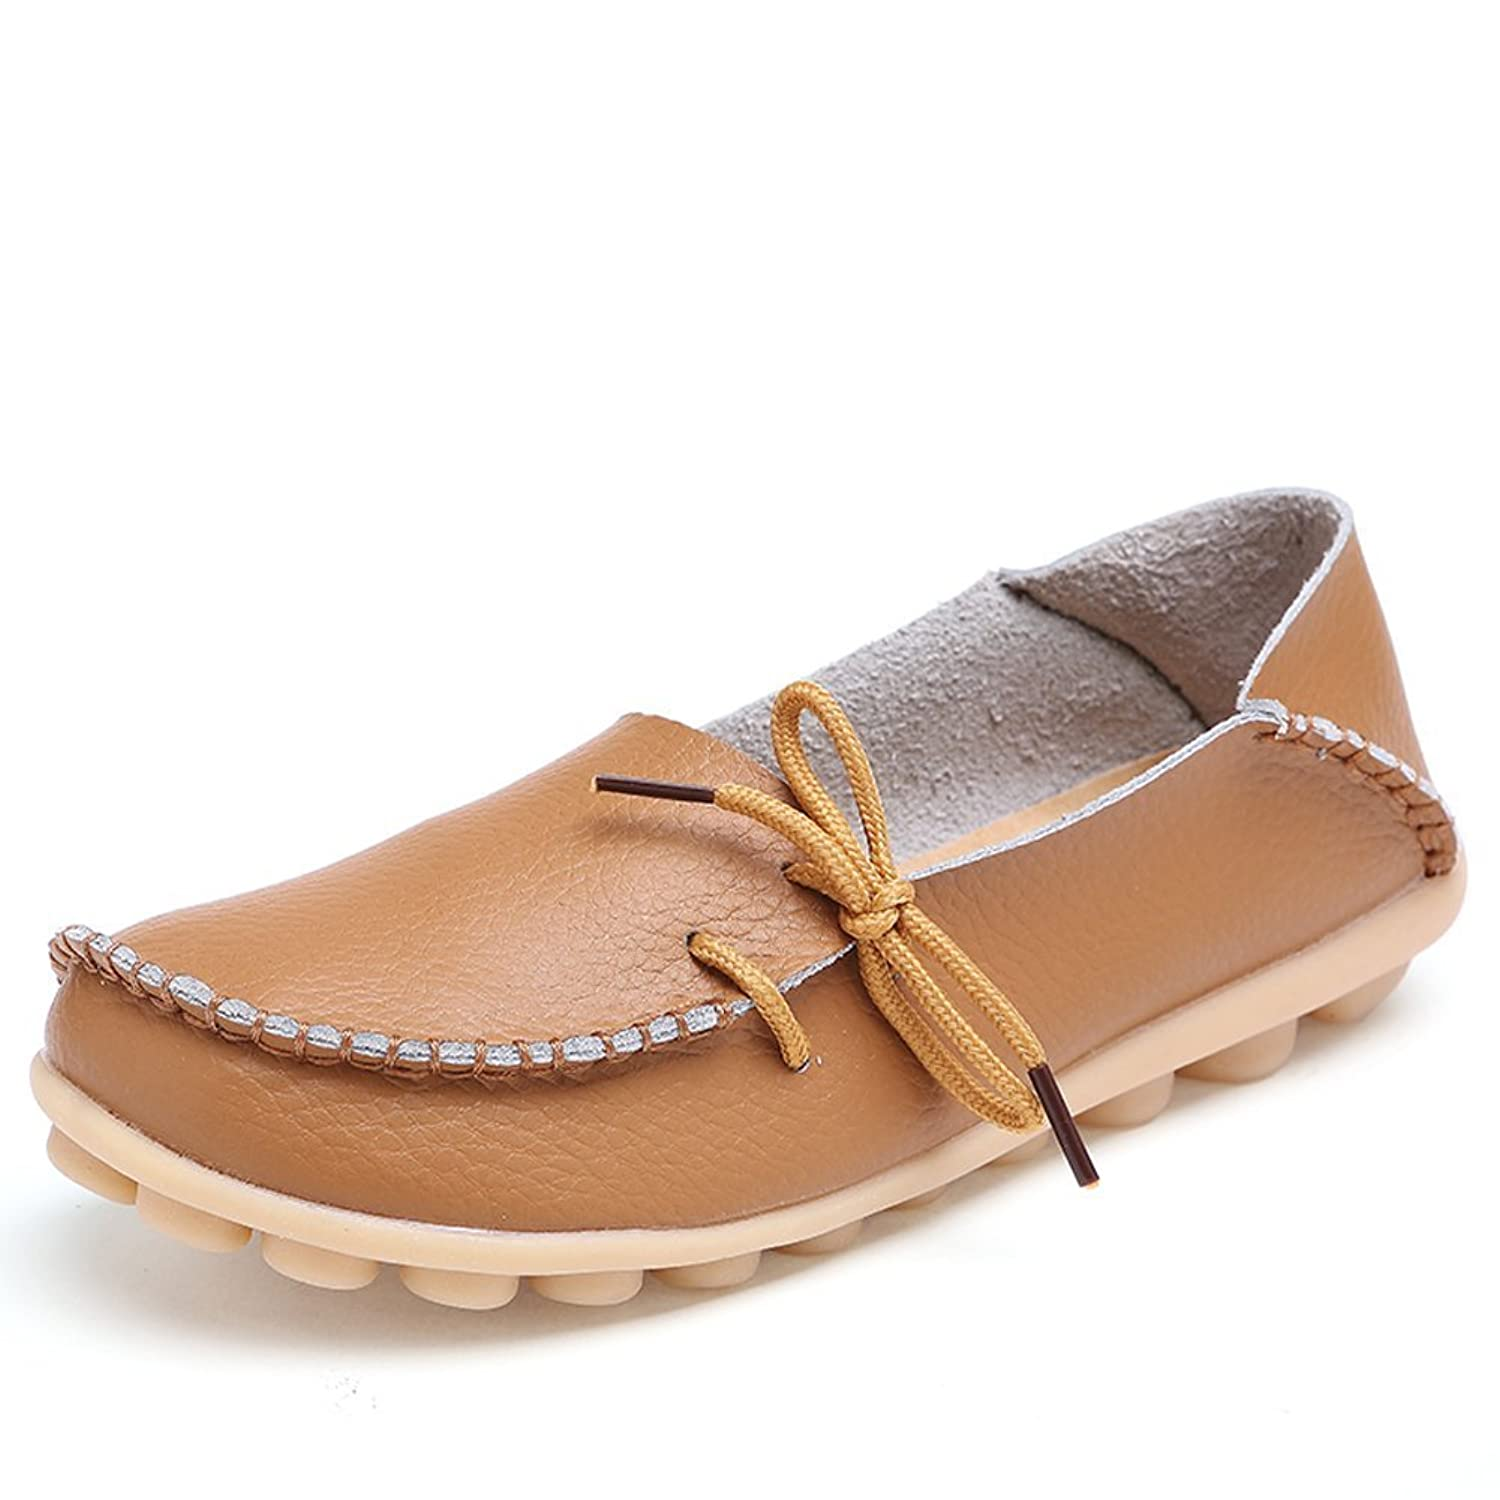 Zicoope Women's Genuine Leather Loafers Casual Shoes Indoor Flat Slip-on Slippers